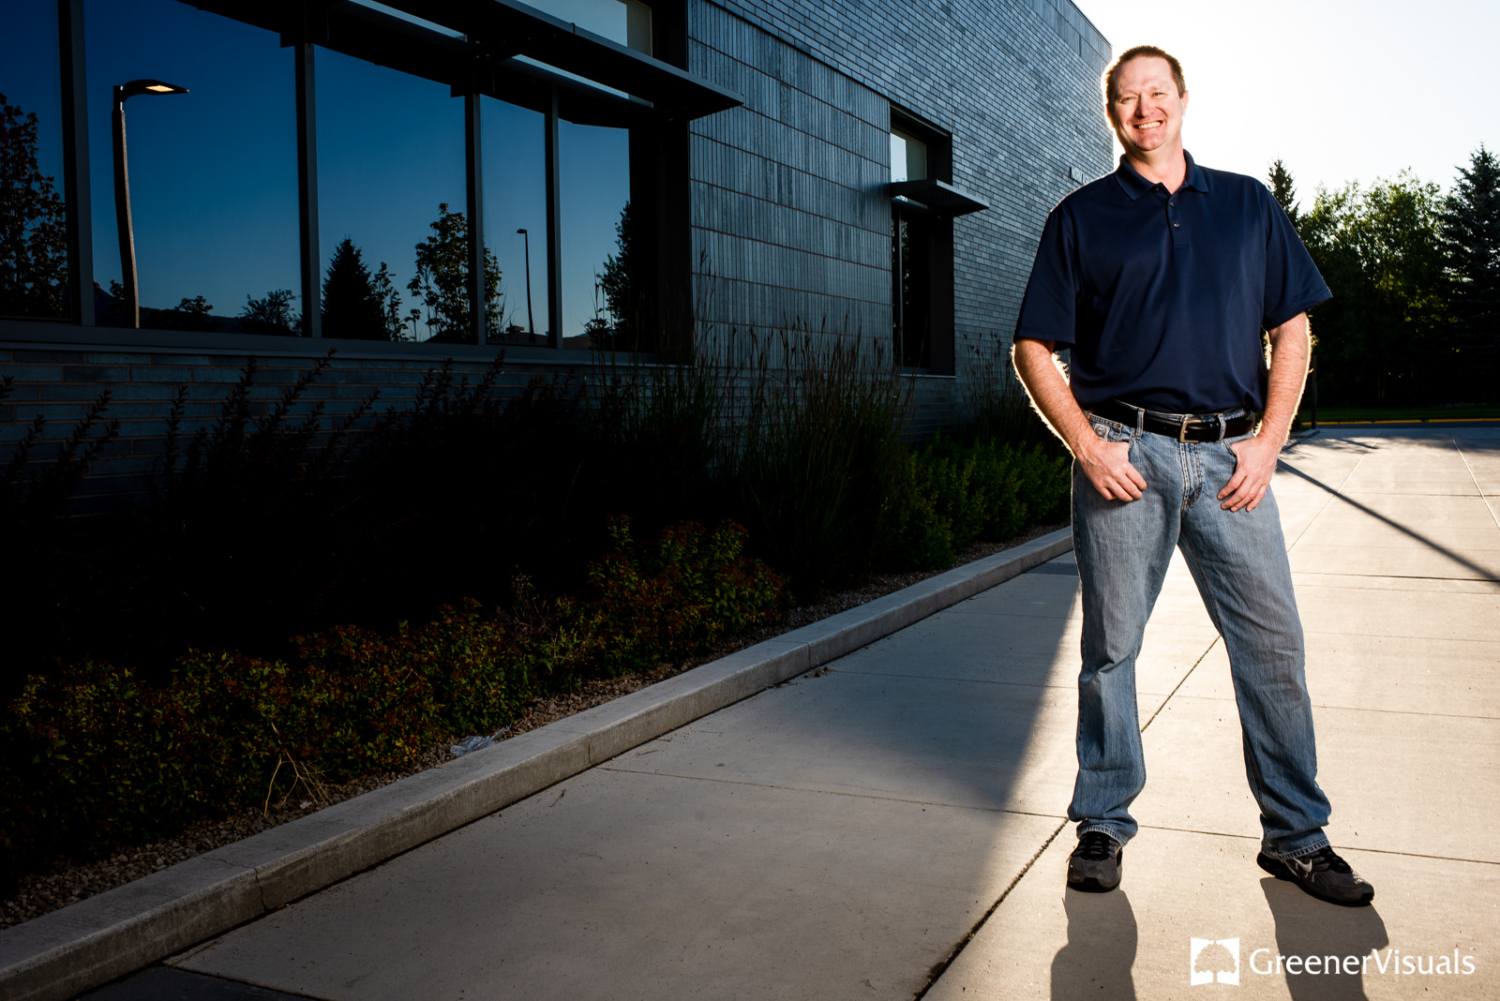 Greener-Visuals-Photography-Best-of-2020-Rocky-Mountain-Credit-Union